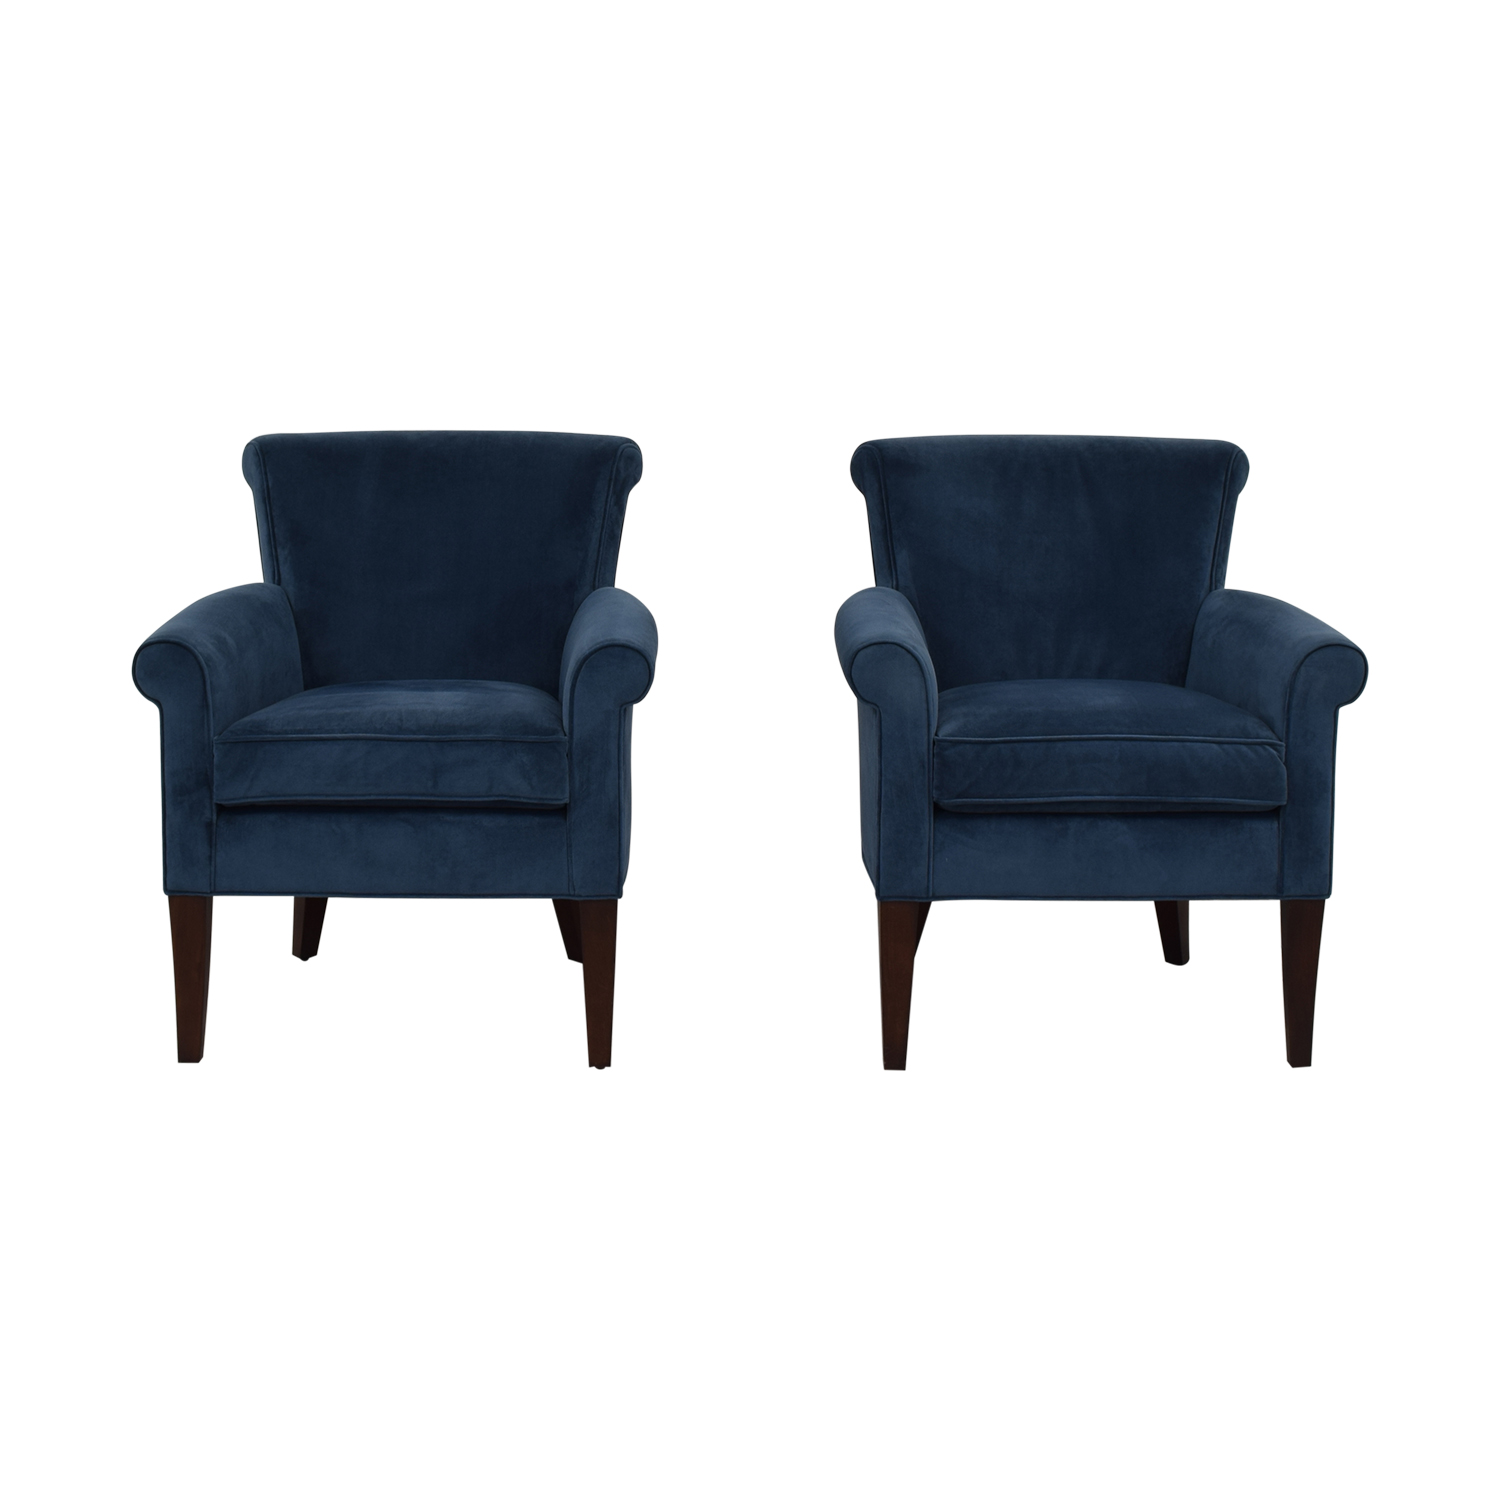 Accent Arm Chairs 70 Off Stickley Furniture Stickley Furniture Sonoma Blue Accent Arm Chairs Chairs